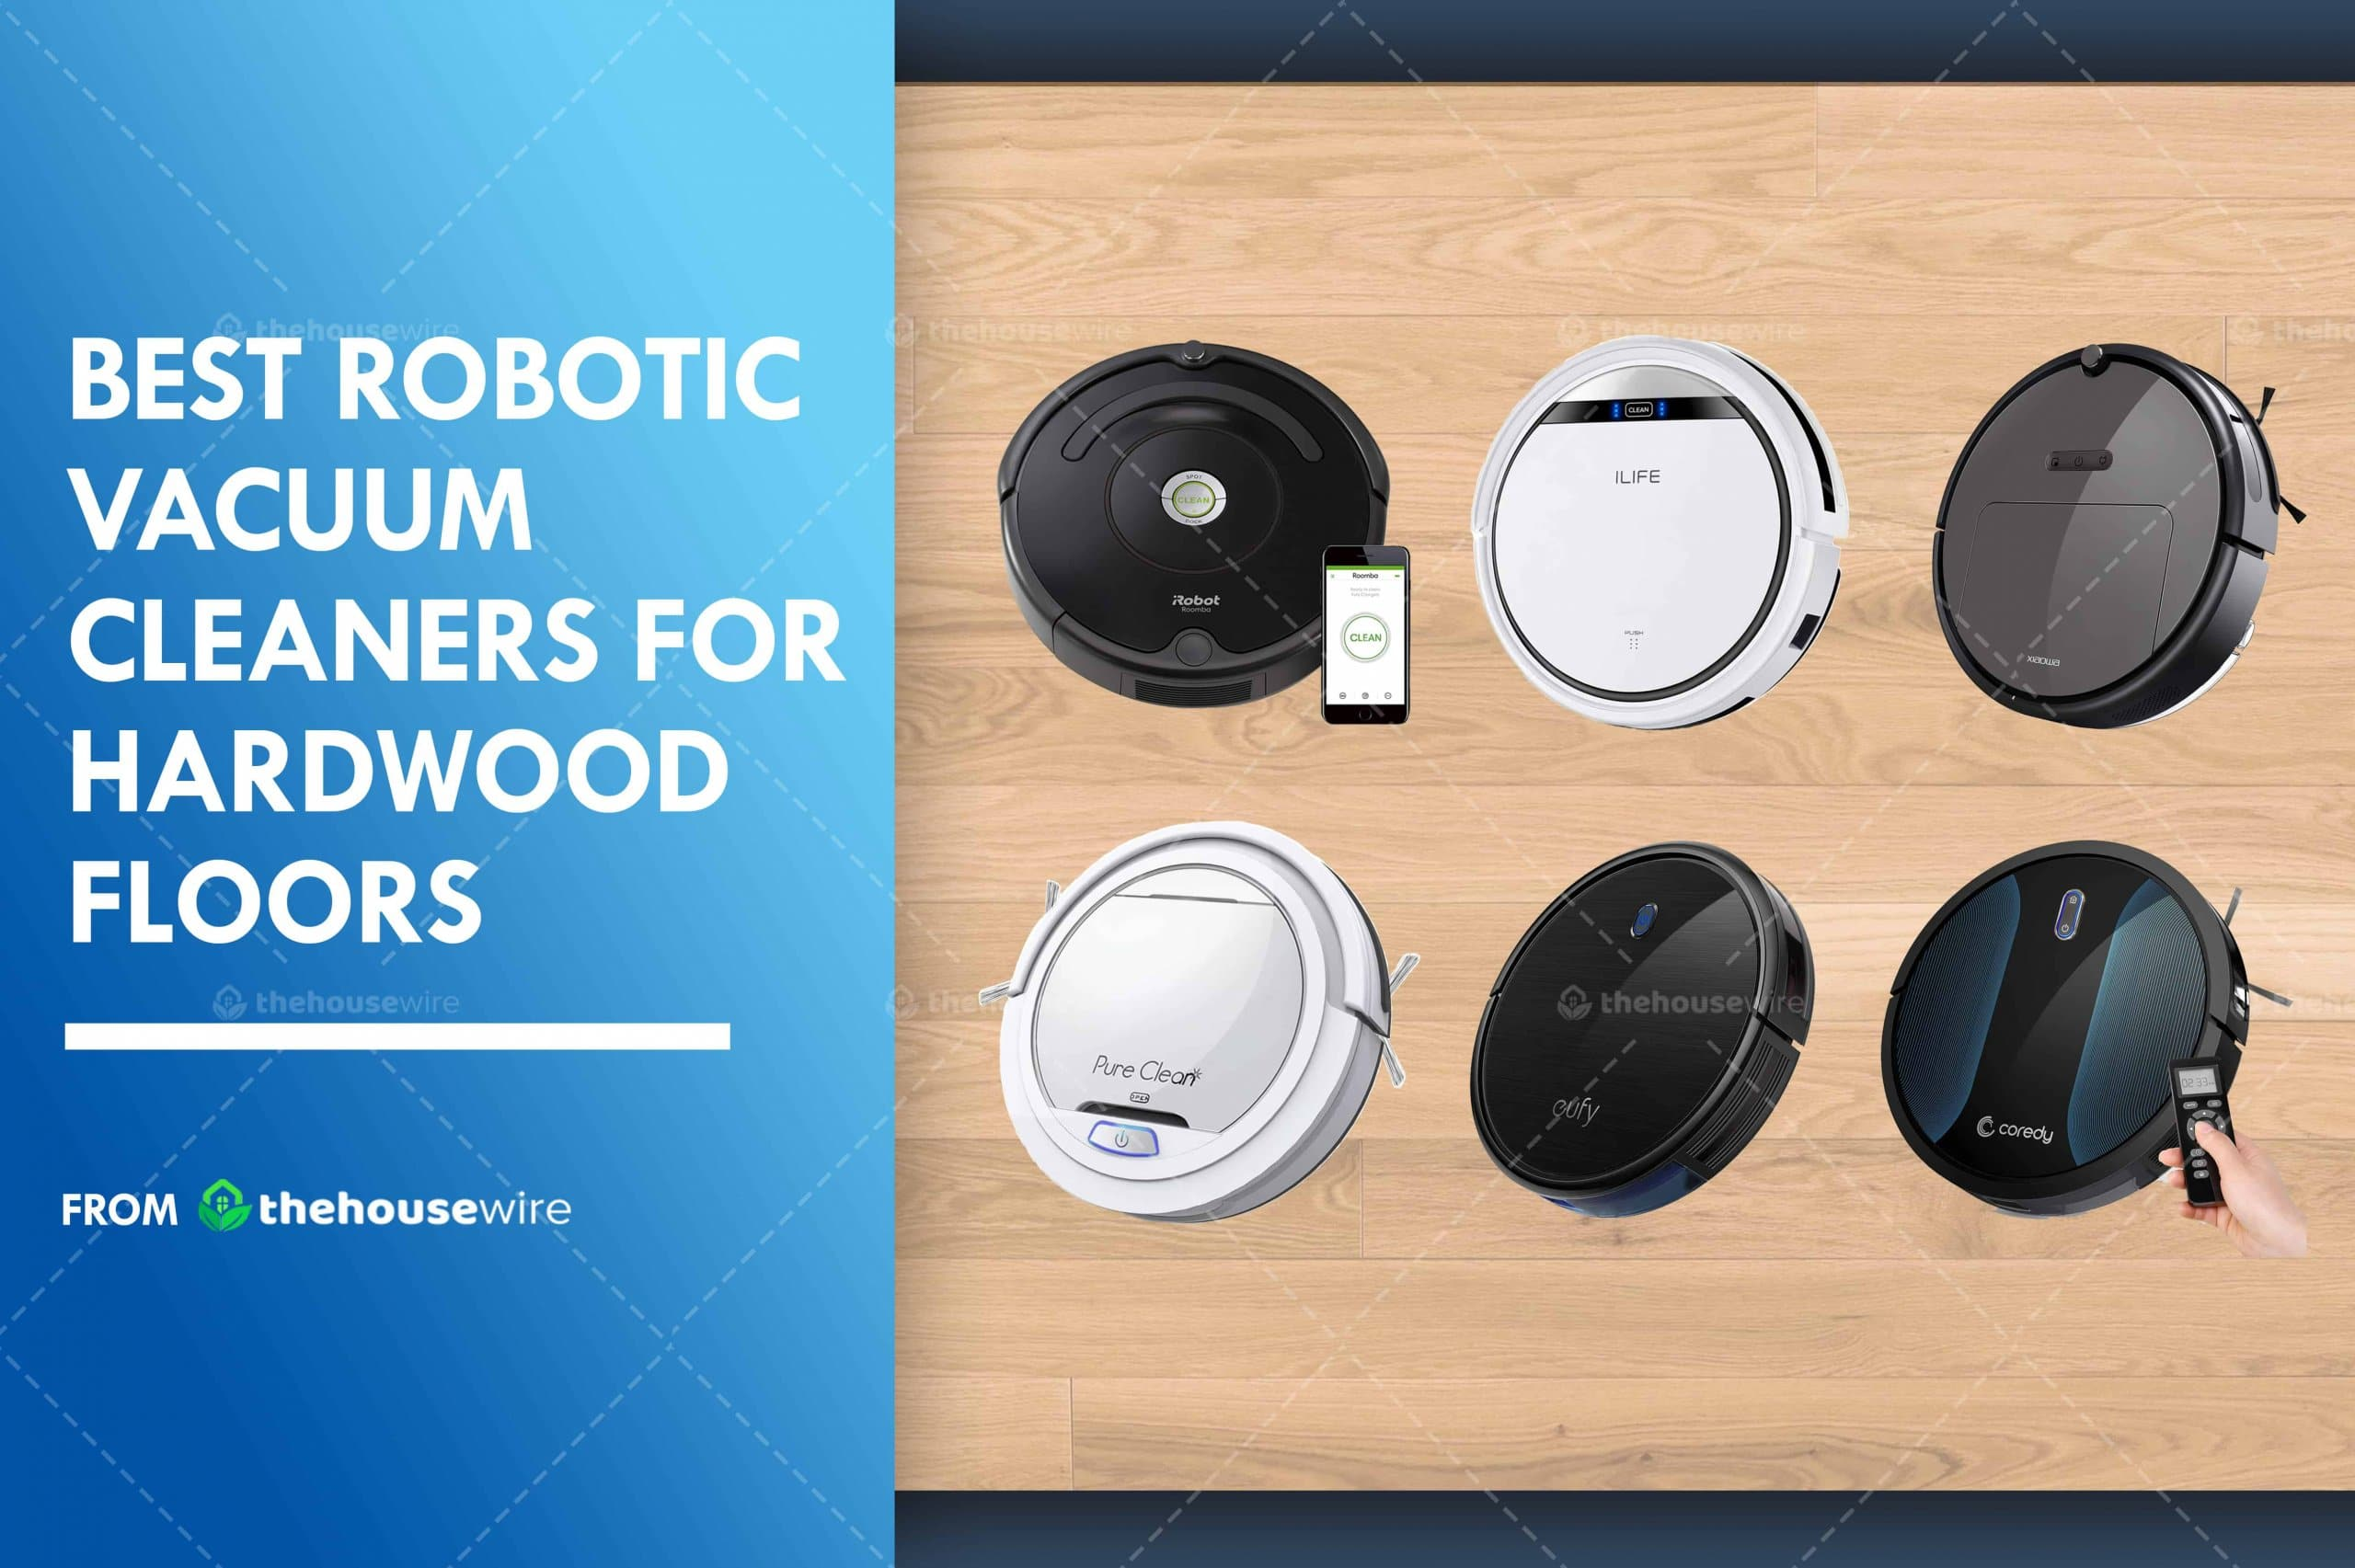 The 6 Best Robot Vacuums for Hardwood Floors  of 2021